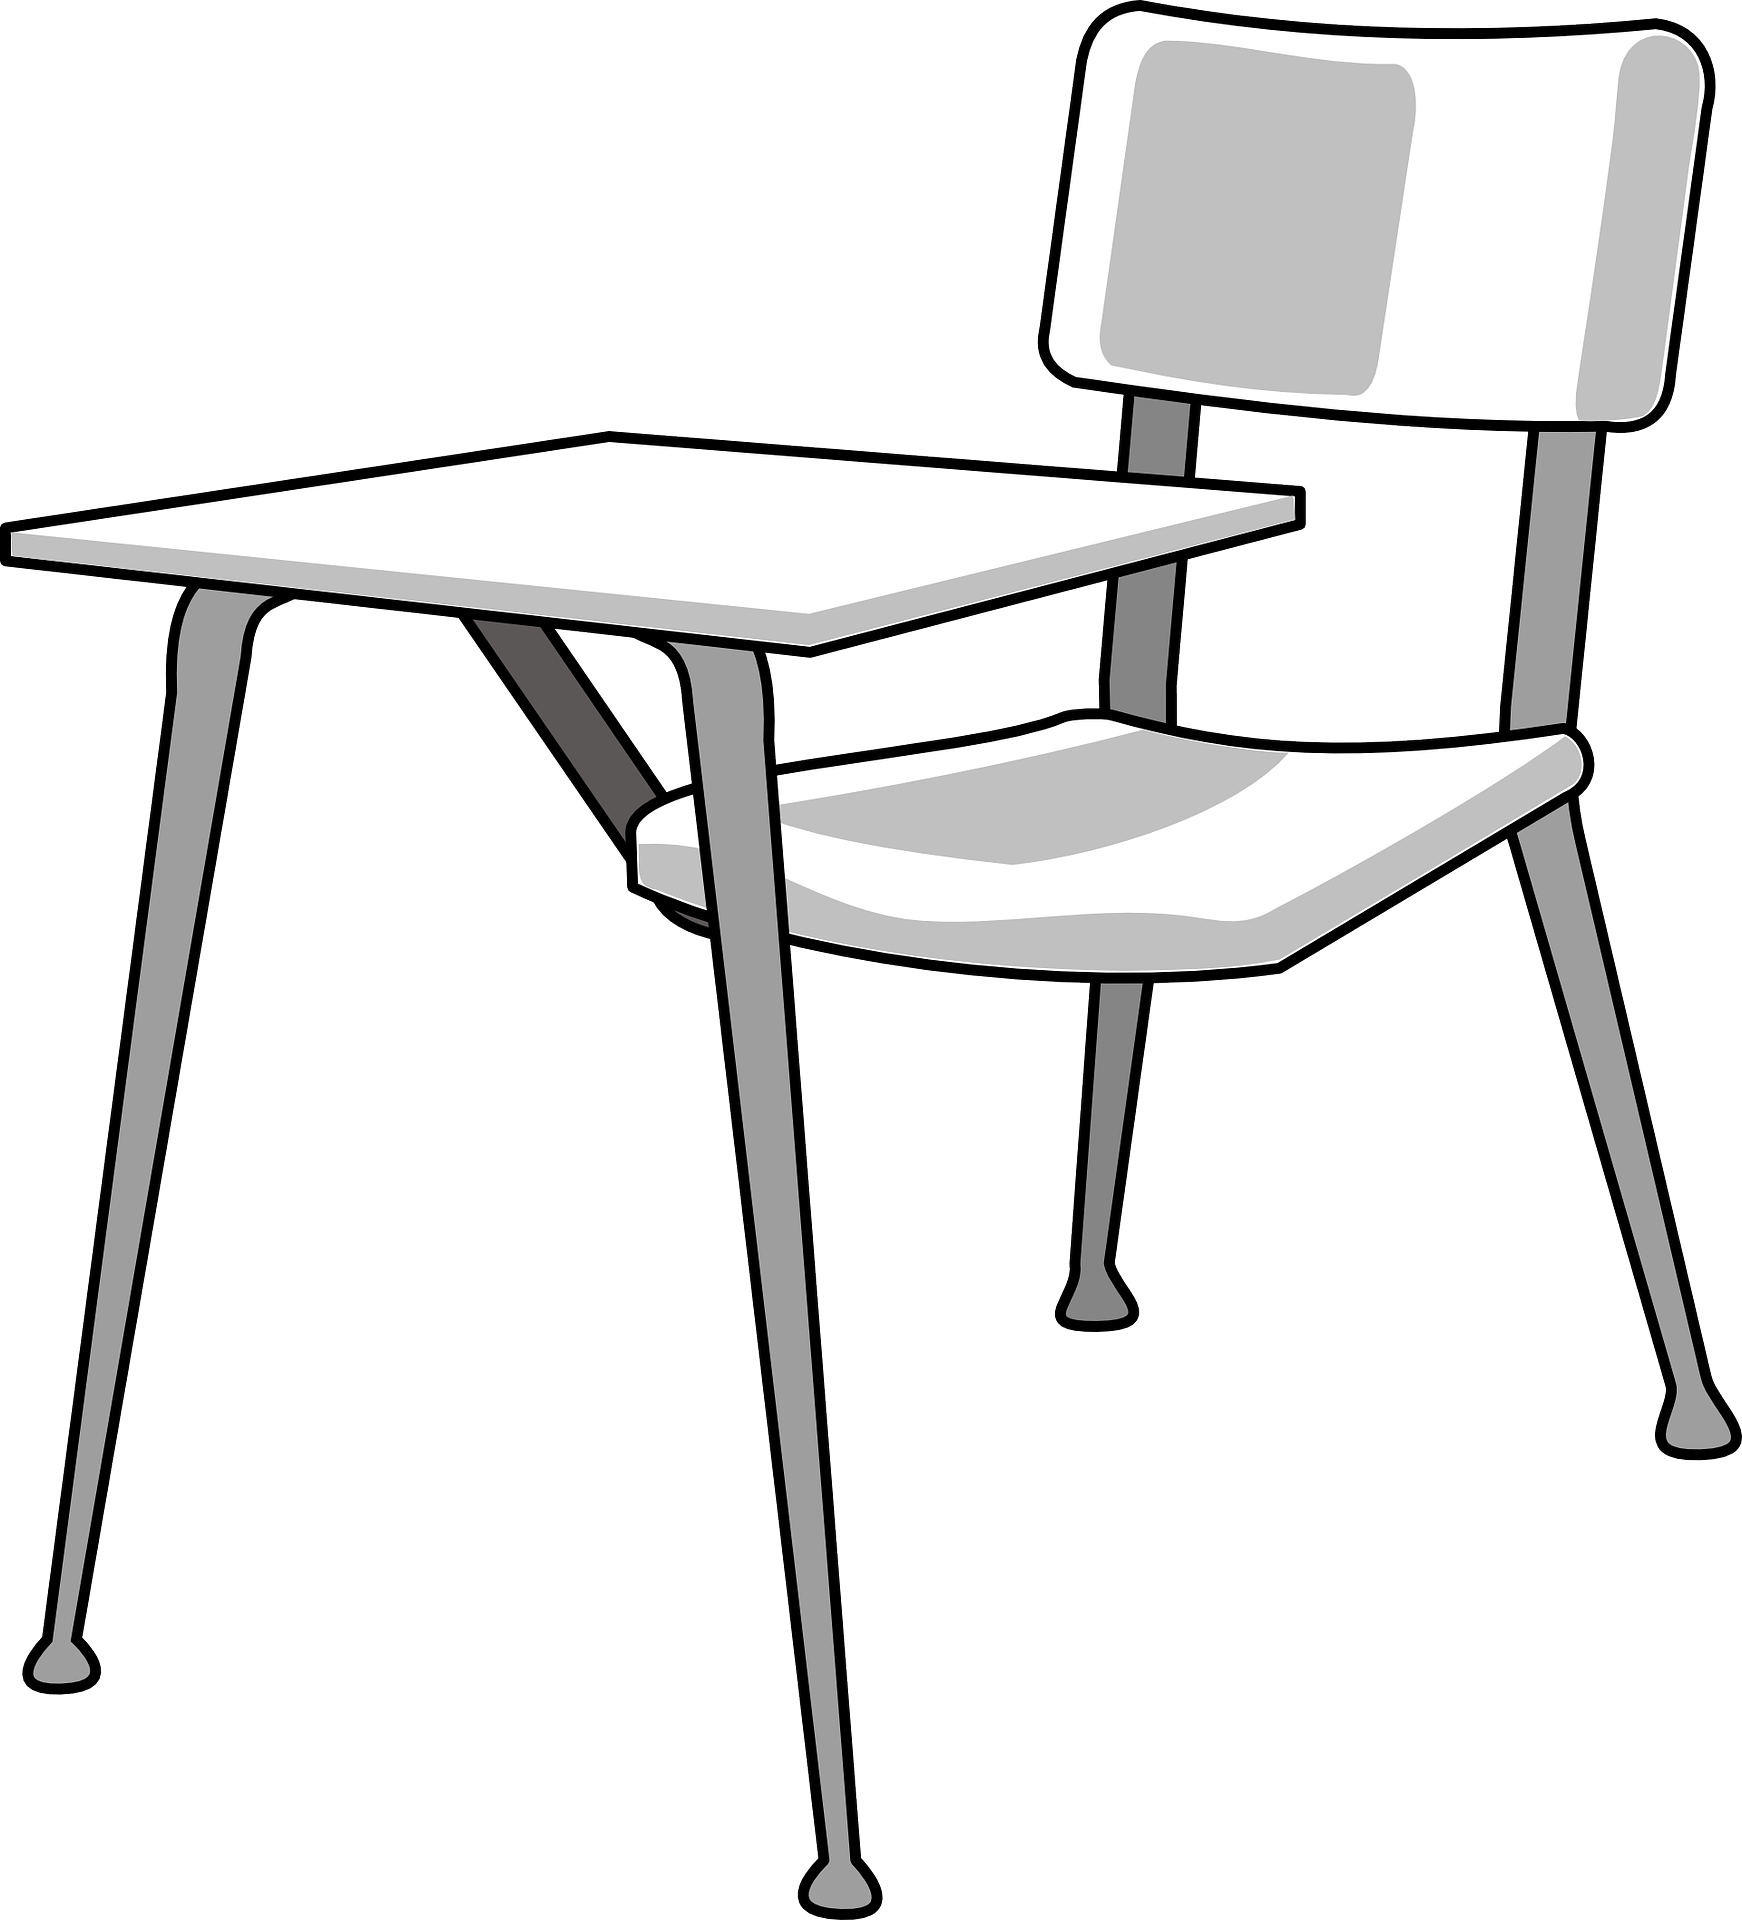 Desk student school chair empty free image